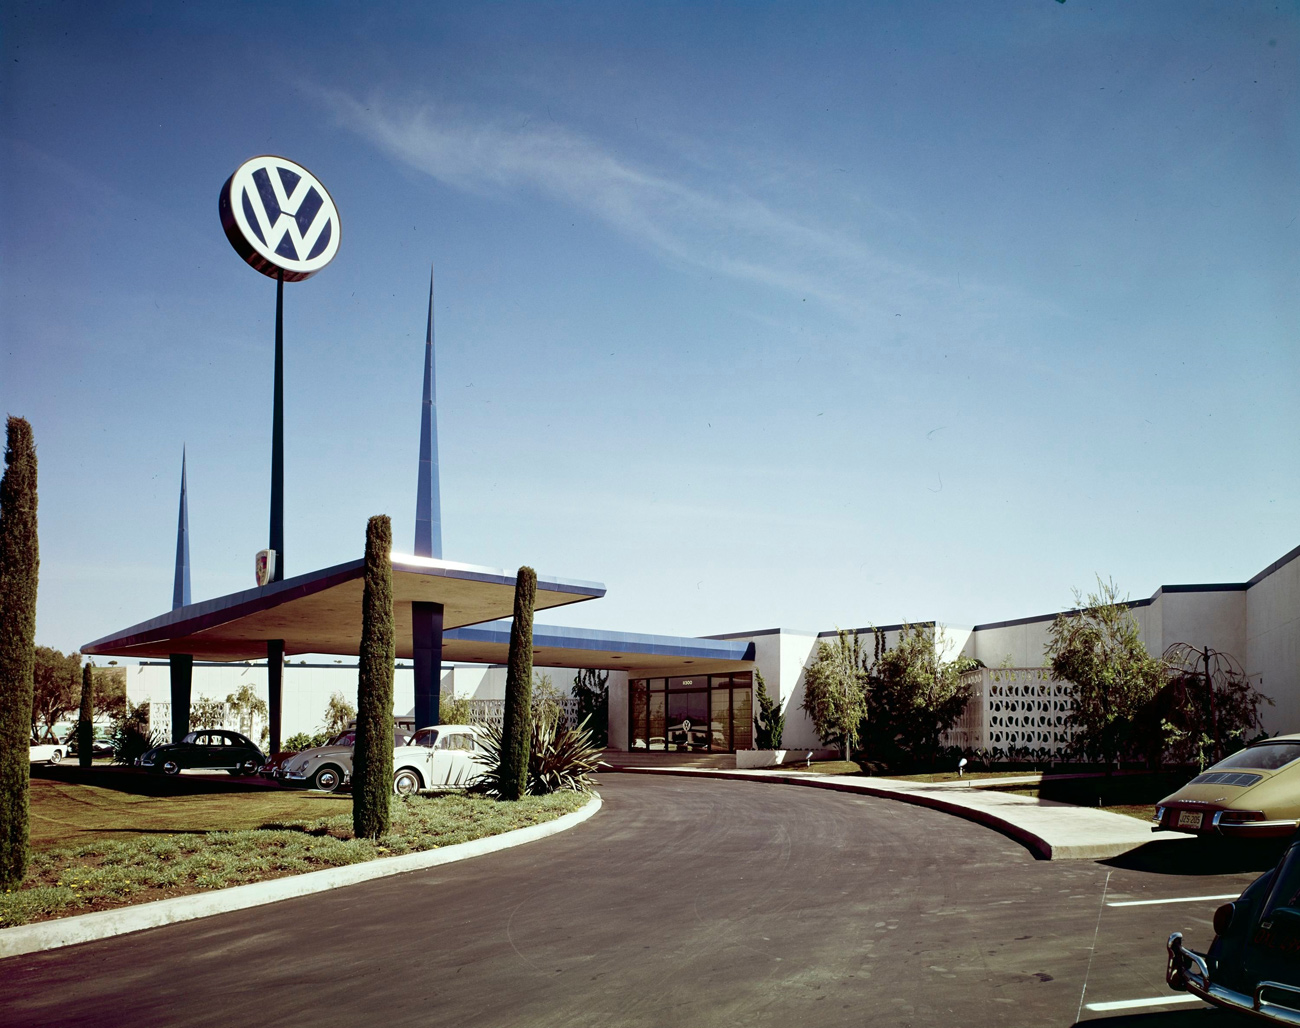 Single-story VW dealership with blue spires and a curving driveway